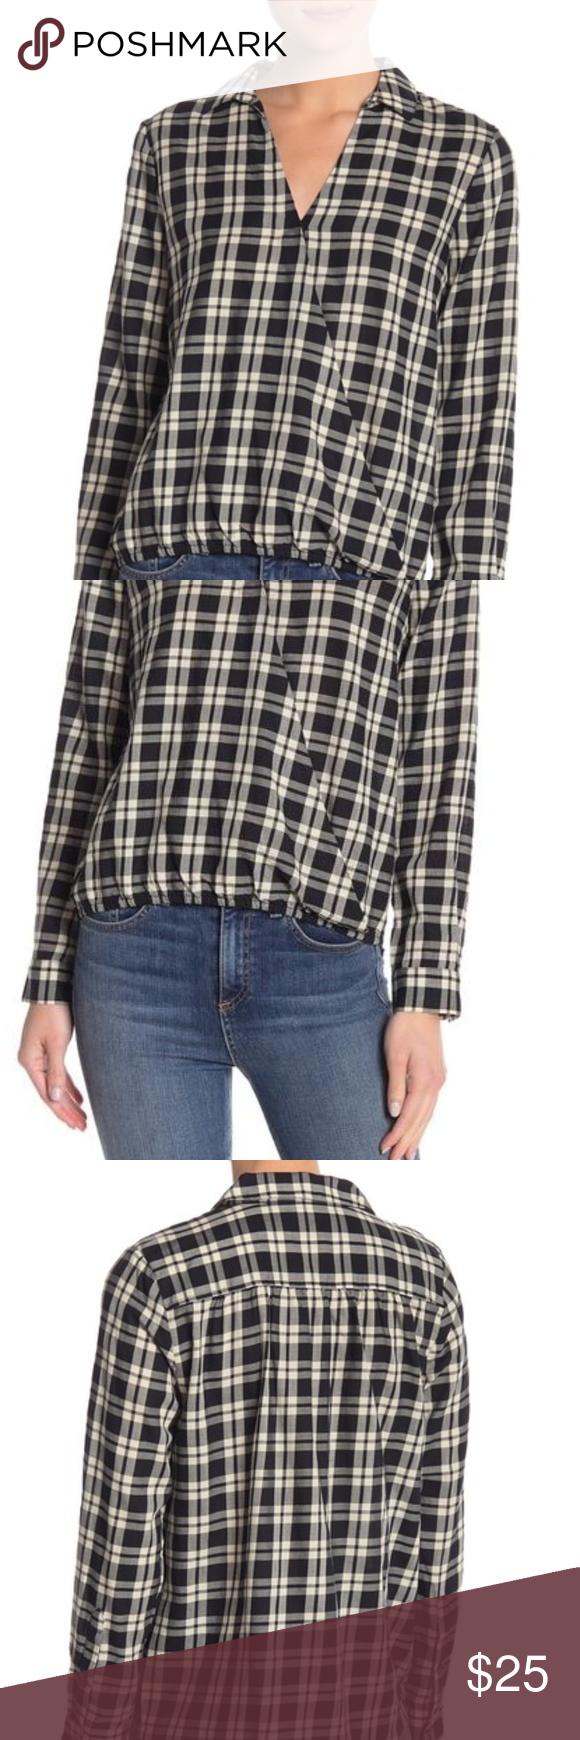 MADEWELL Arion Plaid Shirt in Black/White, Size M Arion Black and White Plaid Shirt by Madewell. Exc...